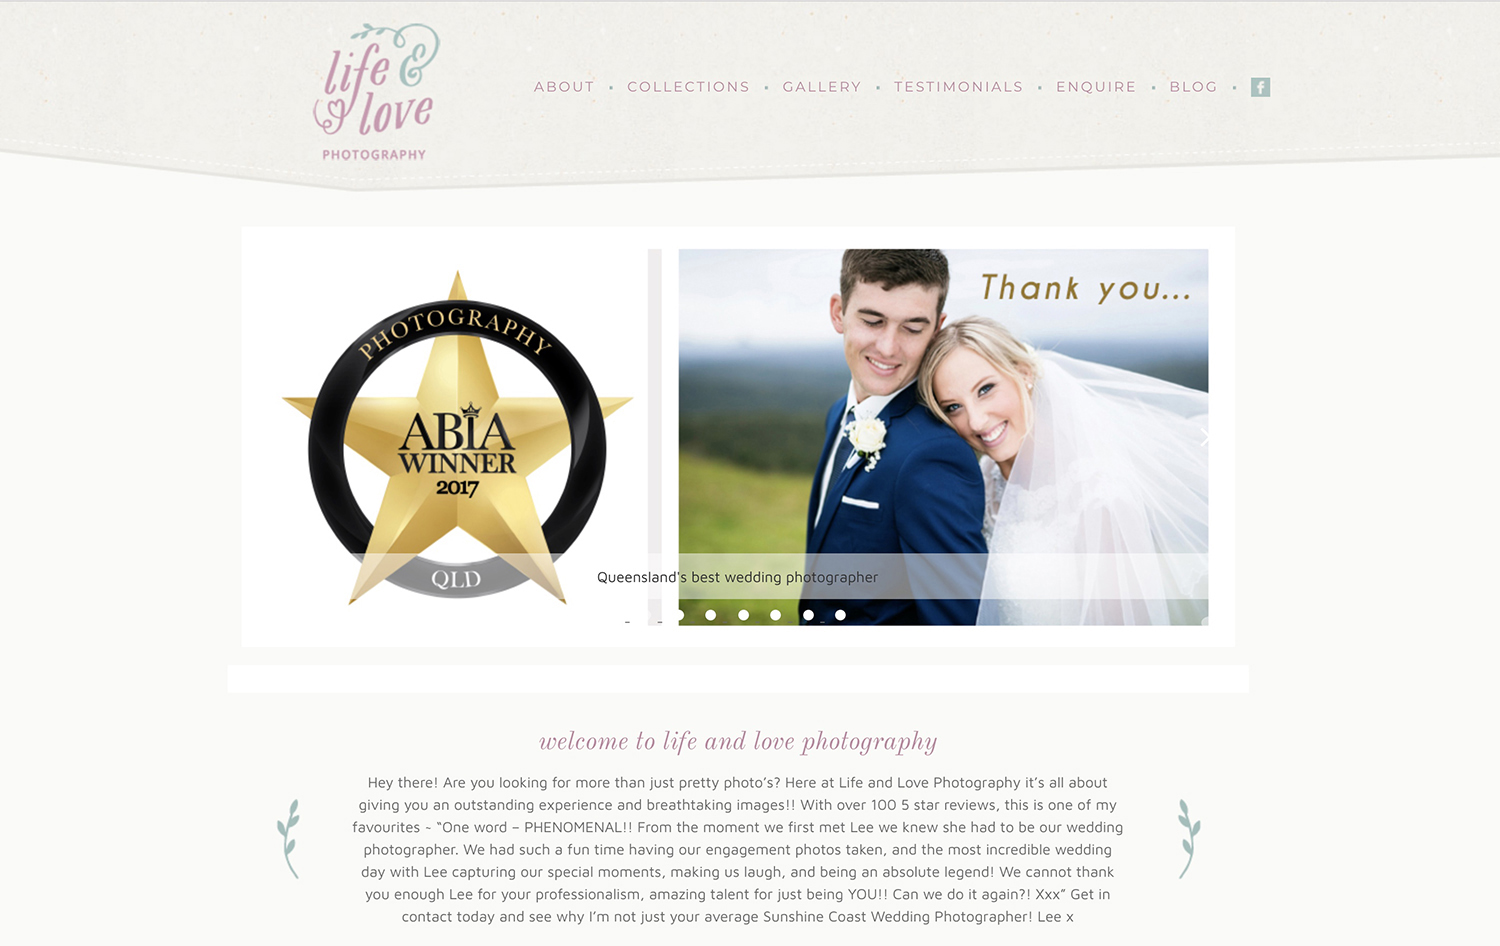 Life & Love Photography - PH: 0411 838 804hello@lifeandlovephotography.com.au